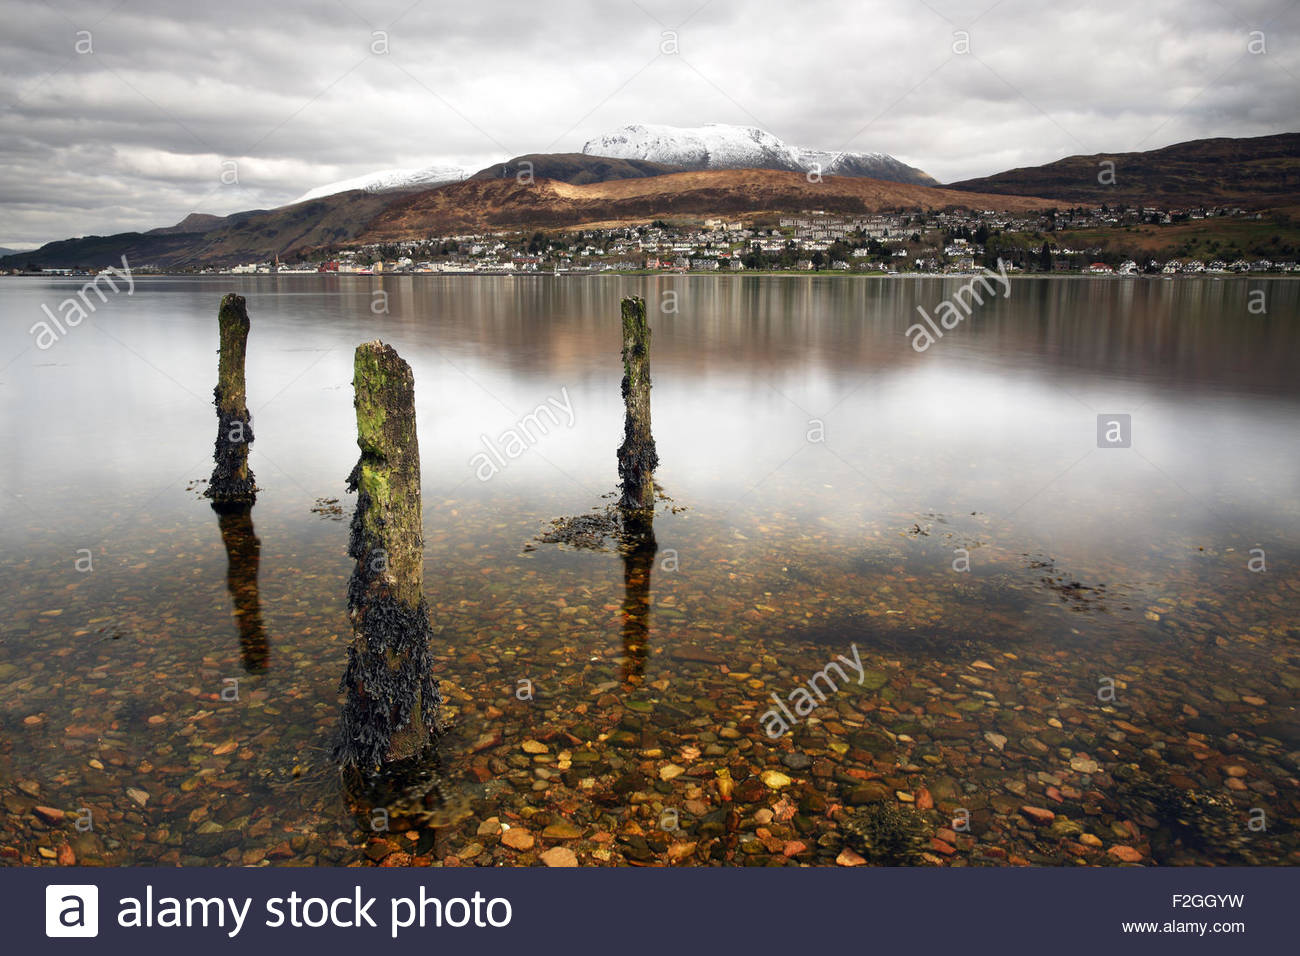 Ben Nevis and Fort William reflecting on Loch Linnhe from Trislaig. Stock Photo